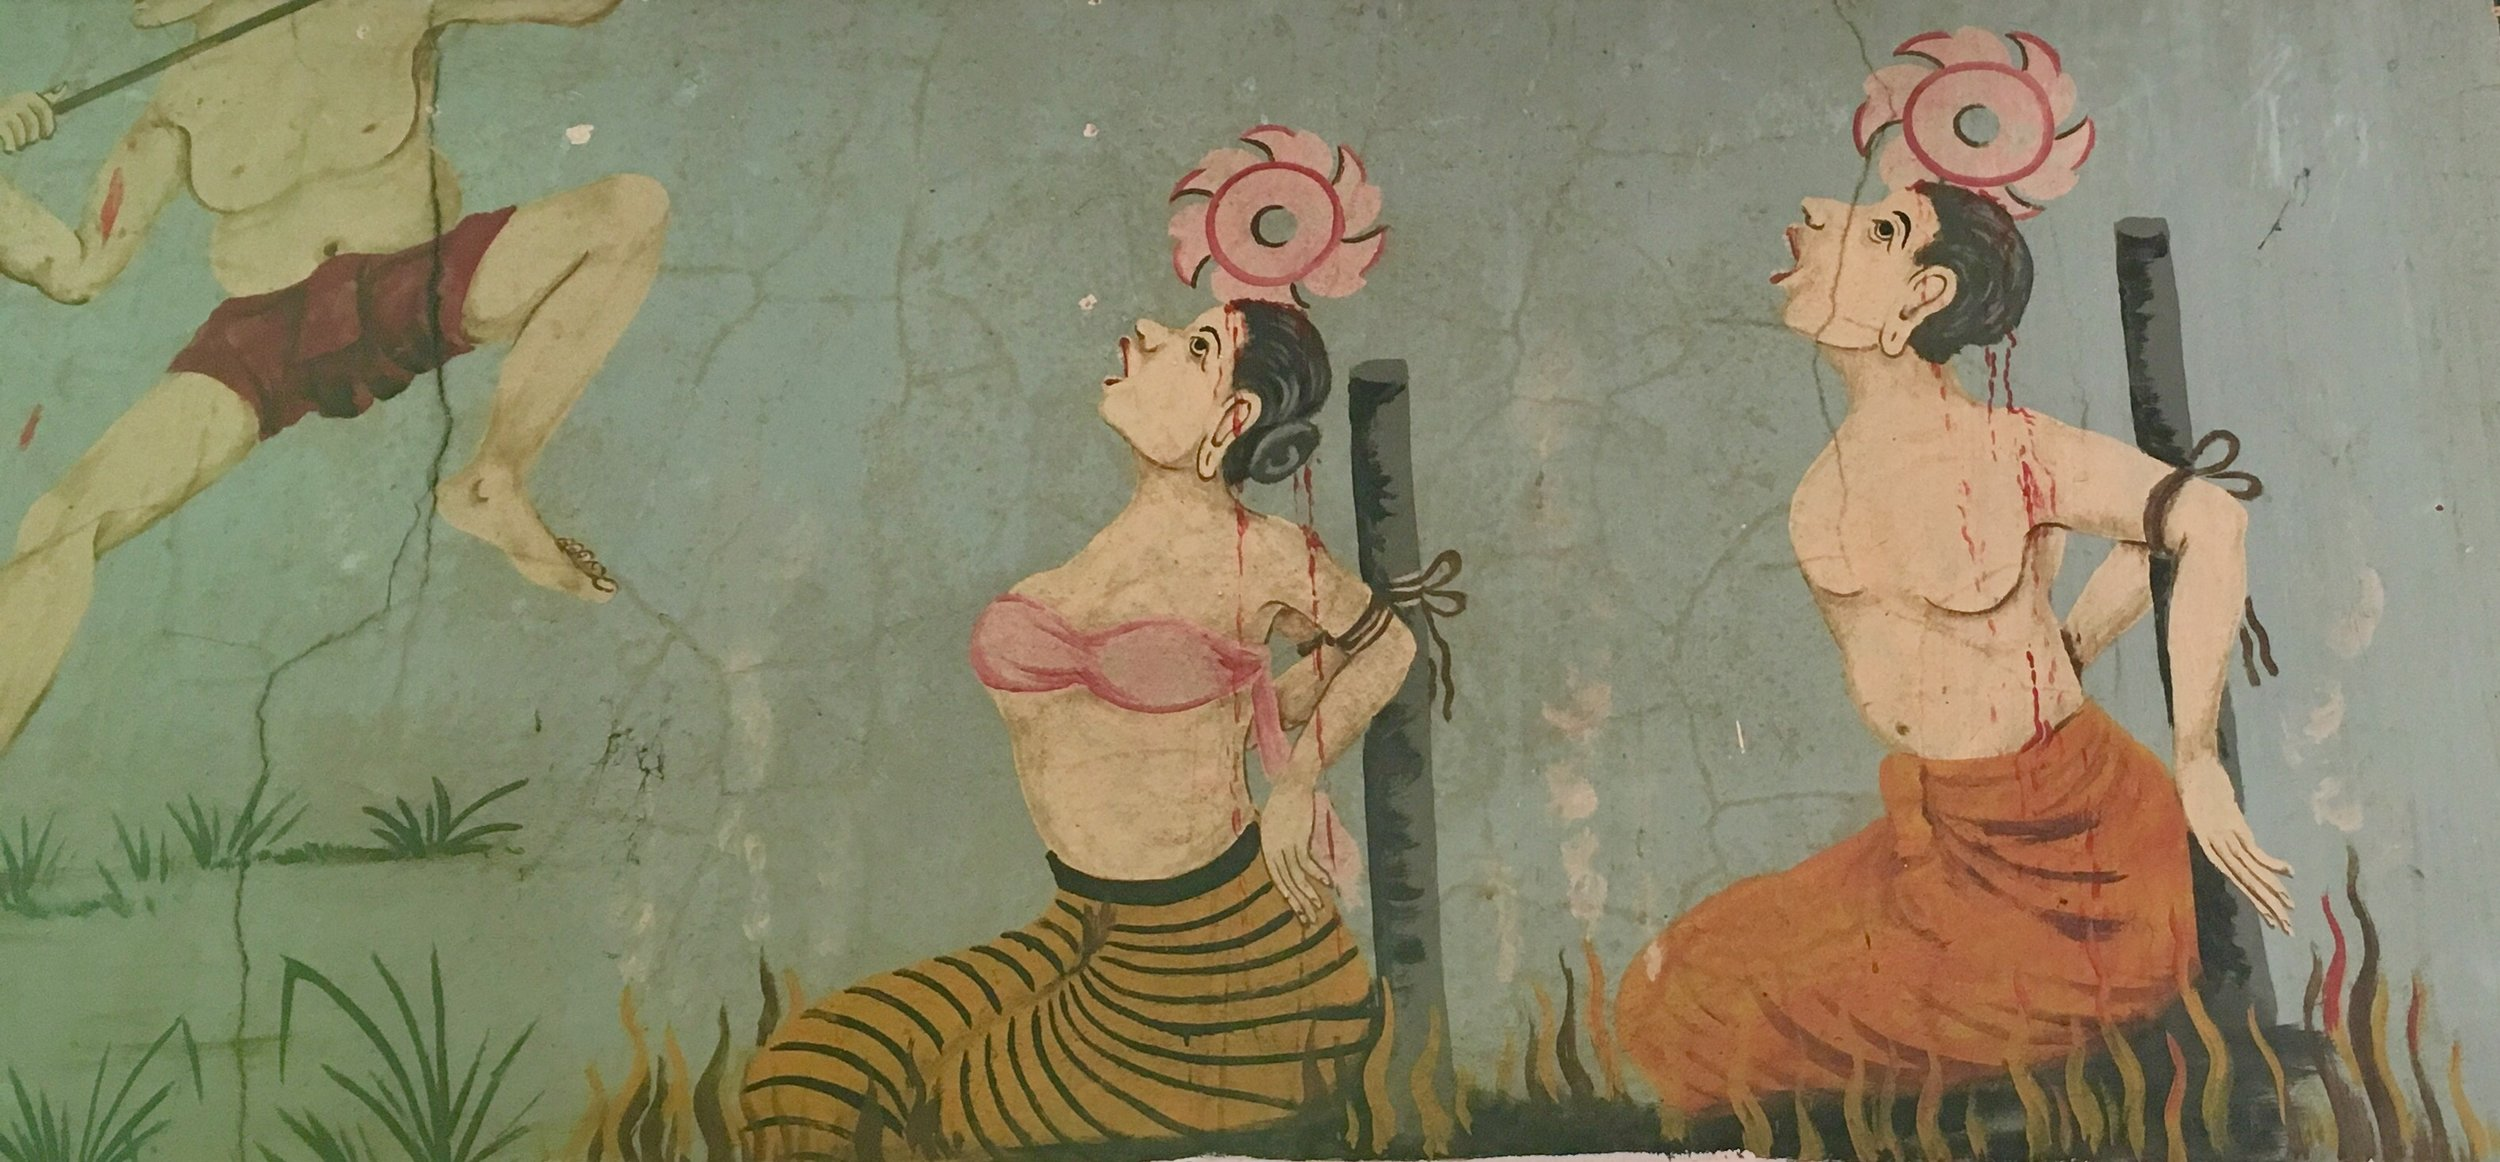 In the main viharn are depictions of Naraka, the Buddhist Hell